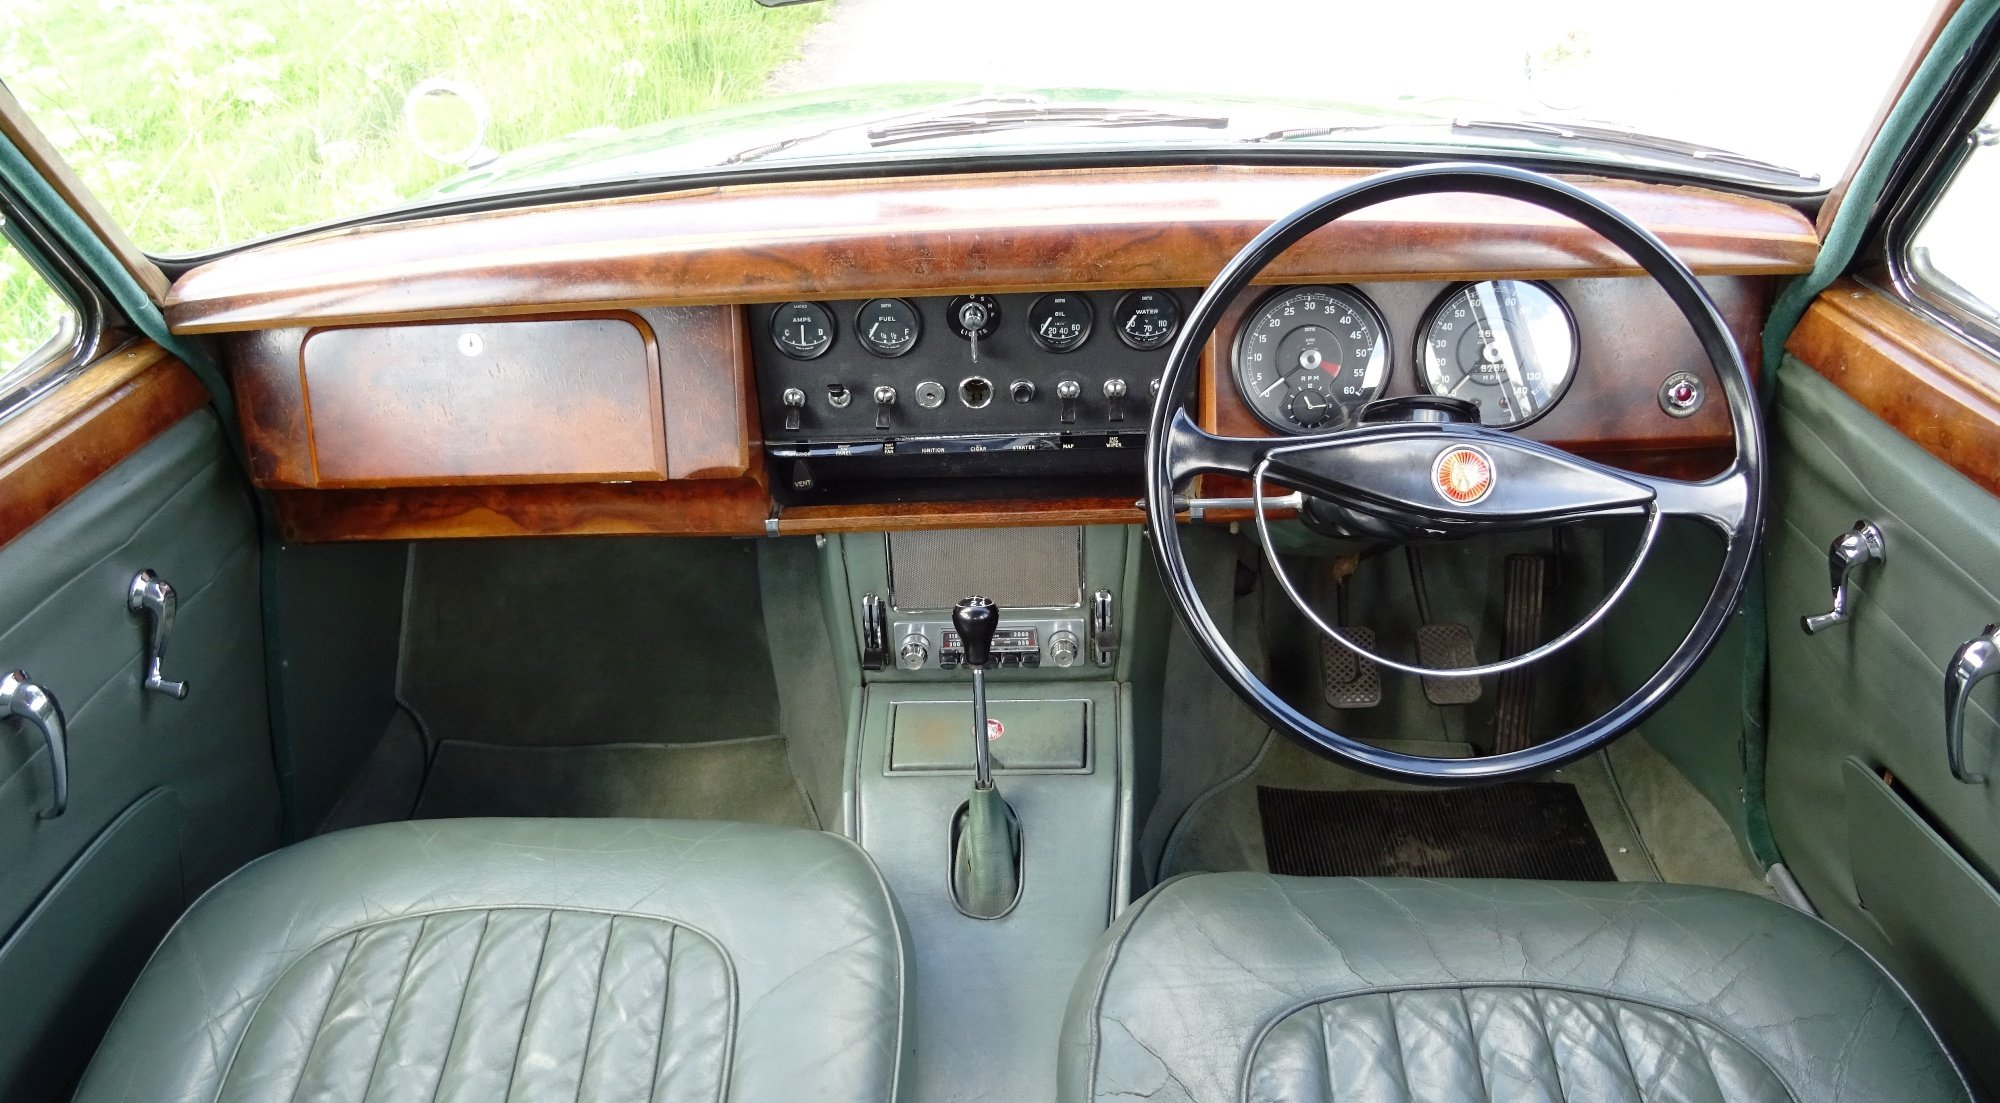 1961 STUNNING JAGUAR MK2 3.8 BRITISH CLASSIC CAR For Sale (picture 5 of 6)